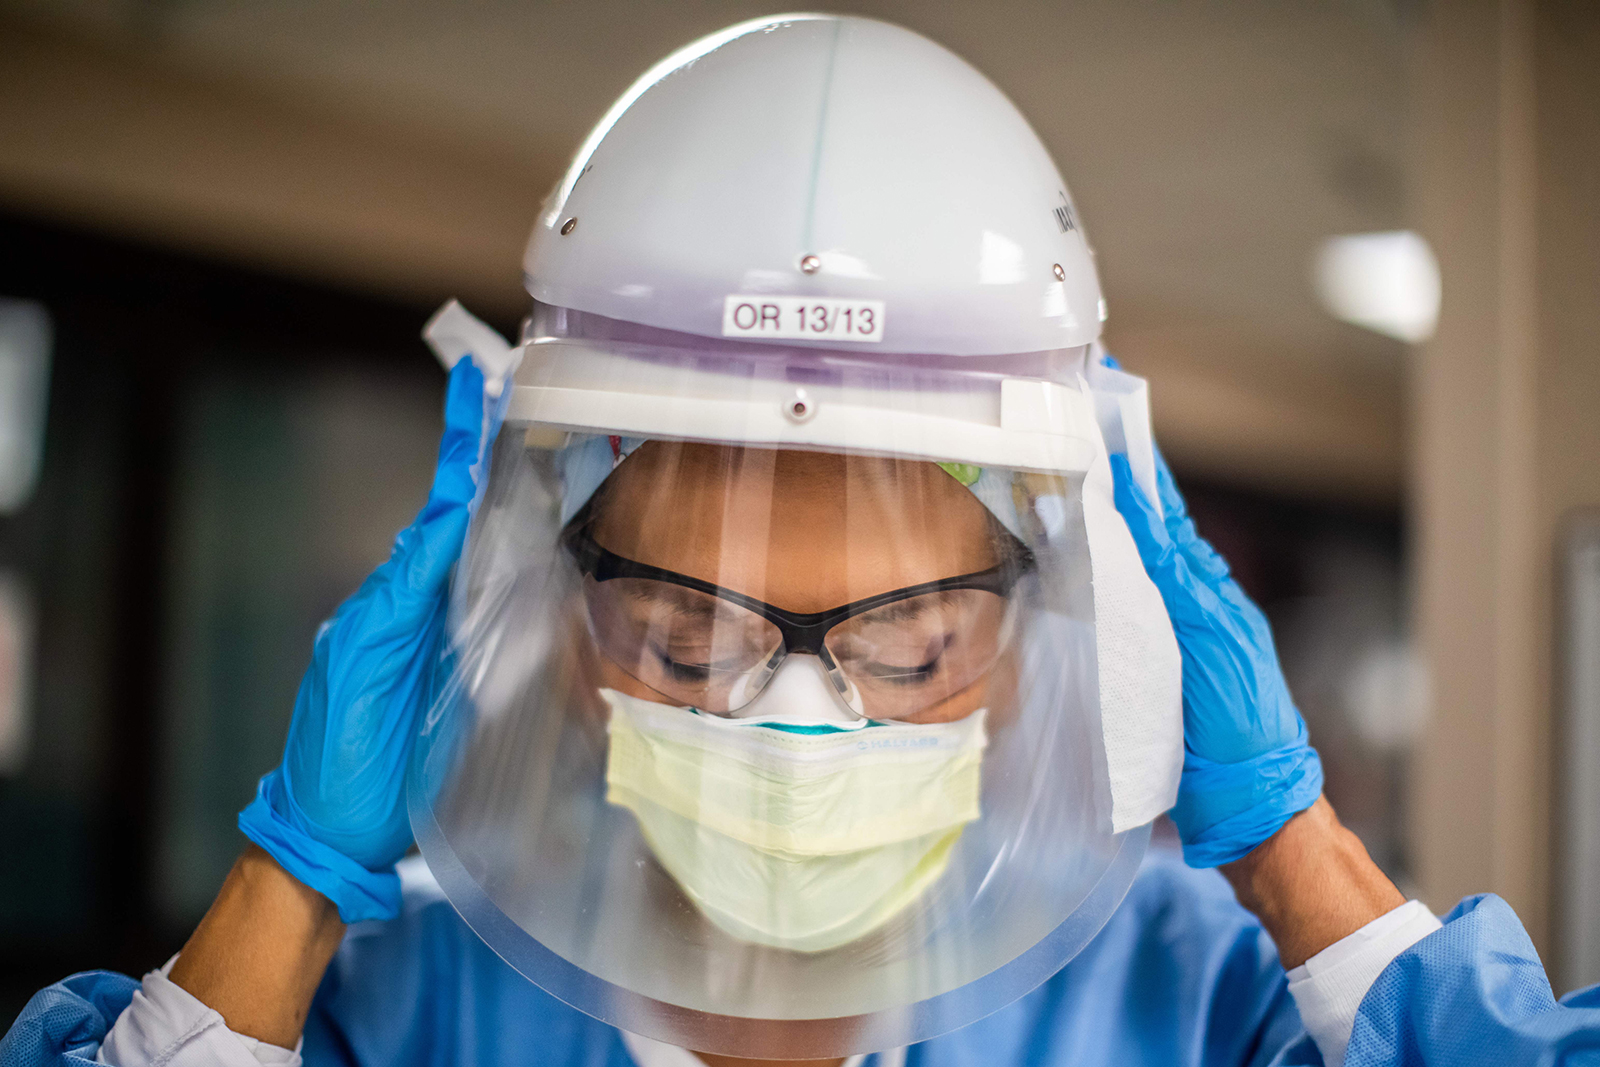 Registered nurse Carmen Verano wipes her CAPR helmet after attending to a Covid-19 patient in the Intensive Care Unit at Providence Cedars-Sinai Tarzana Medical Center in Tarzana, California on December 18.